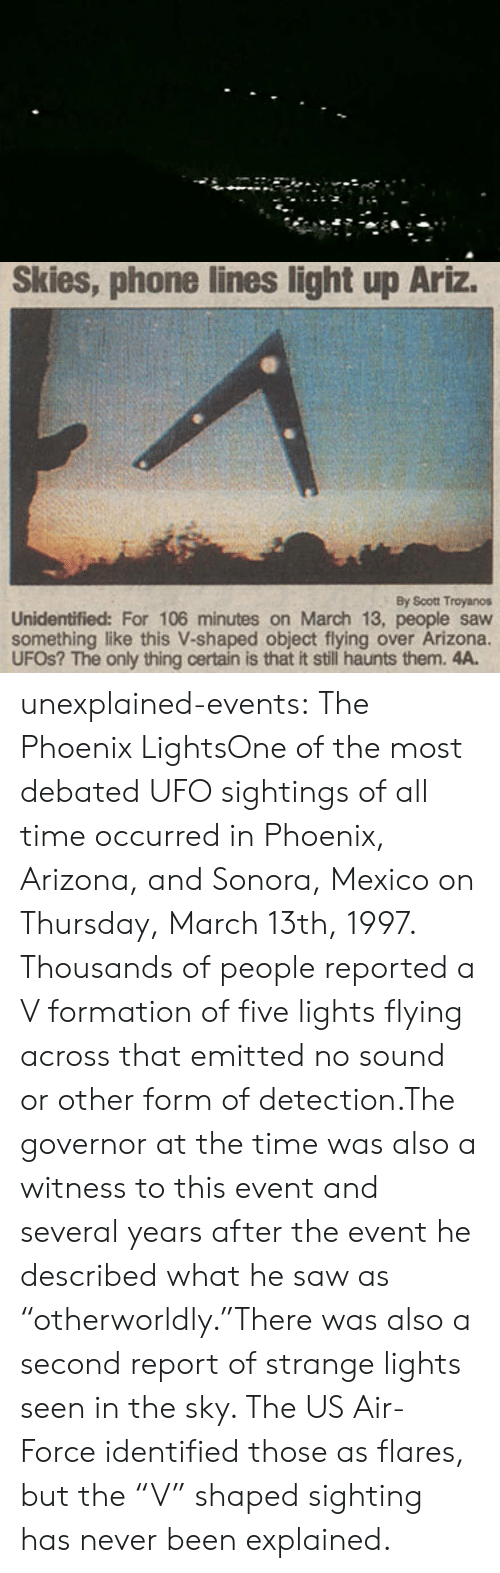 "Air Force: Skies, phone lines light up Ariz.  By Scott Troyanos  Unidentified: For 106 minutes on March 13, people saw  something like this V-shaped object flying over Arizona.  UFOS? The only thing certain is that it still haunts them. 4A. unexplained-events:  The Phoenix LightsOne of the most debated UFO sightings of all time occurred in Phoenix, Arizona, and Sonora, Mexico on Thursday, March 13th, 1997. Thousands of people reported a V formation of five lights flying across that emitted no sound or other form of detection.The governor at the time was also a witness to this event and several years after the event he described what he saw as   ""otherworldly.""There was also a second report of strange lights seen in the sky. The US Air-Force identified those as flares, but the ""V"" shaped sighting has never been explained."